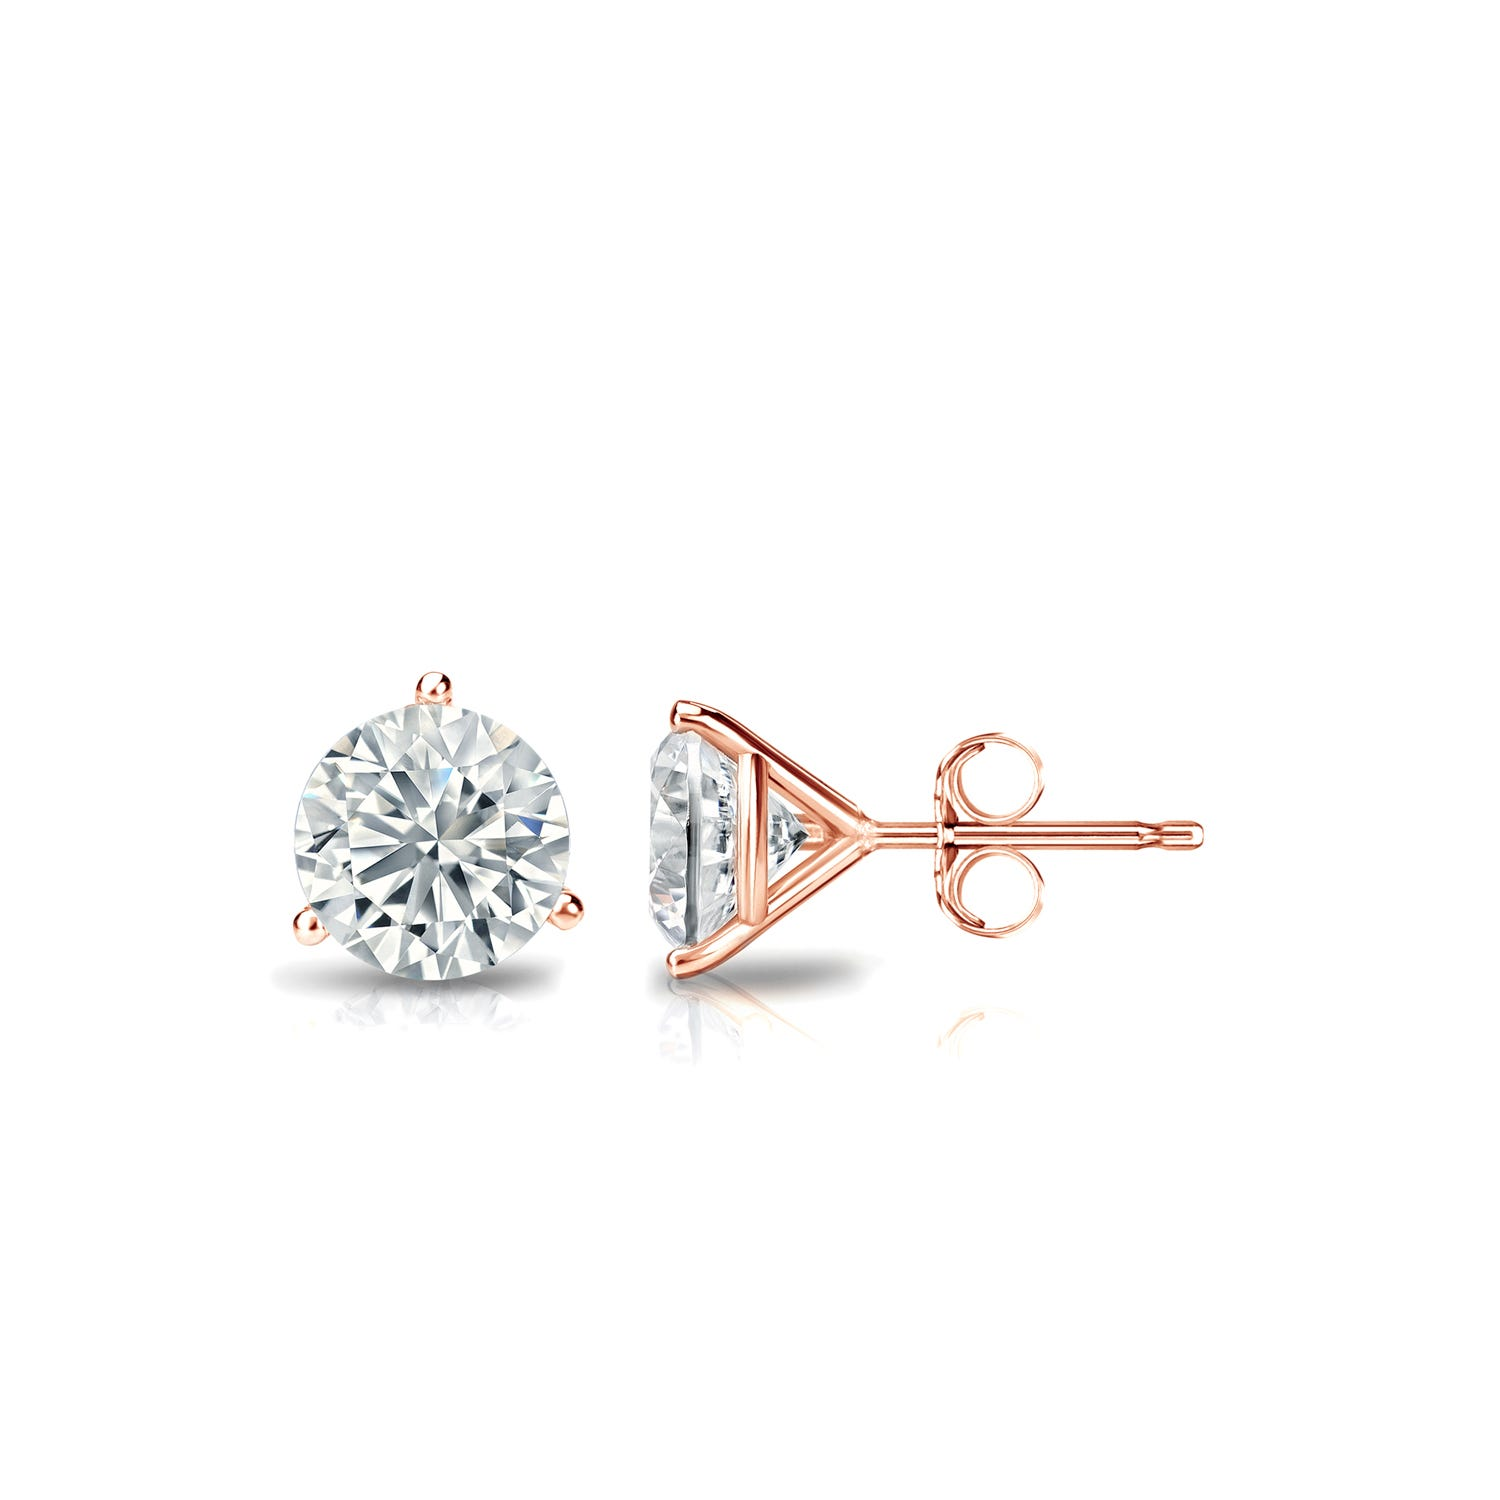 5/8 CTTW Round Diamond Solitaire Stud Earrings IJ I2 in 14K Rose Gold 3-Prong Setting